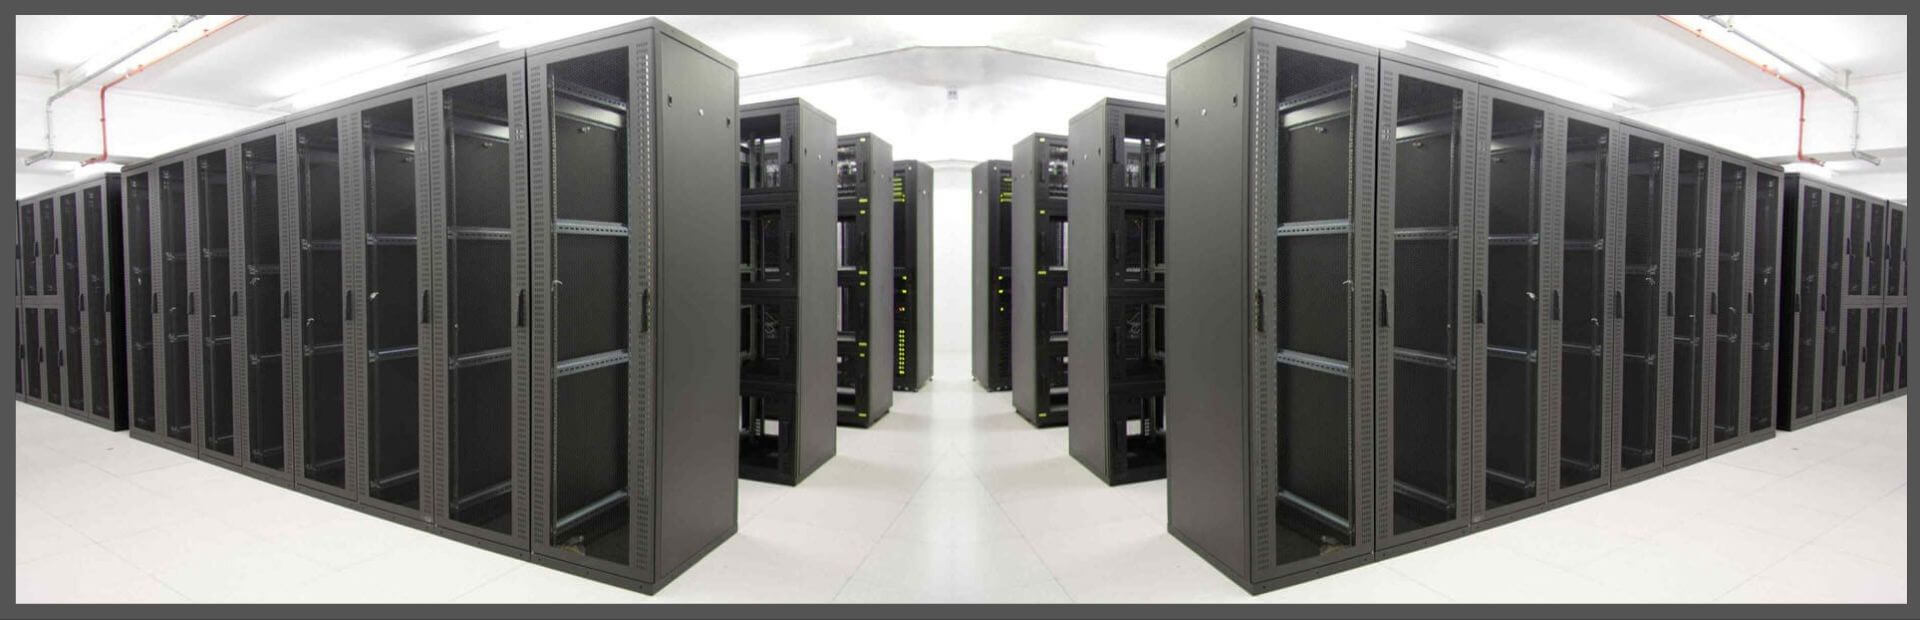 data center india image